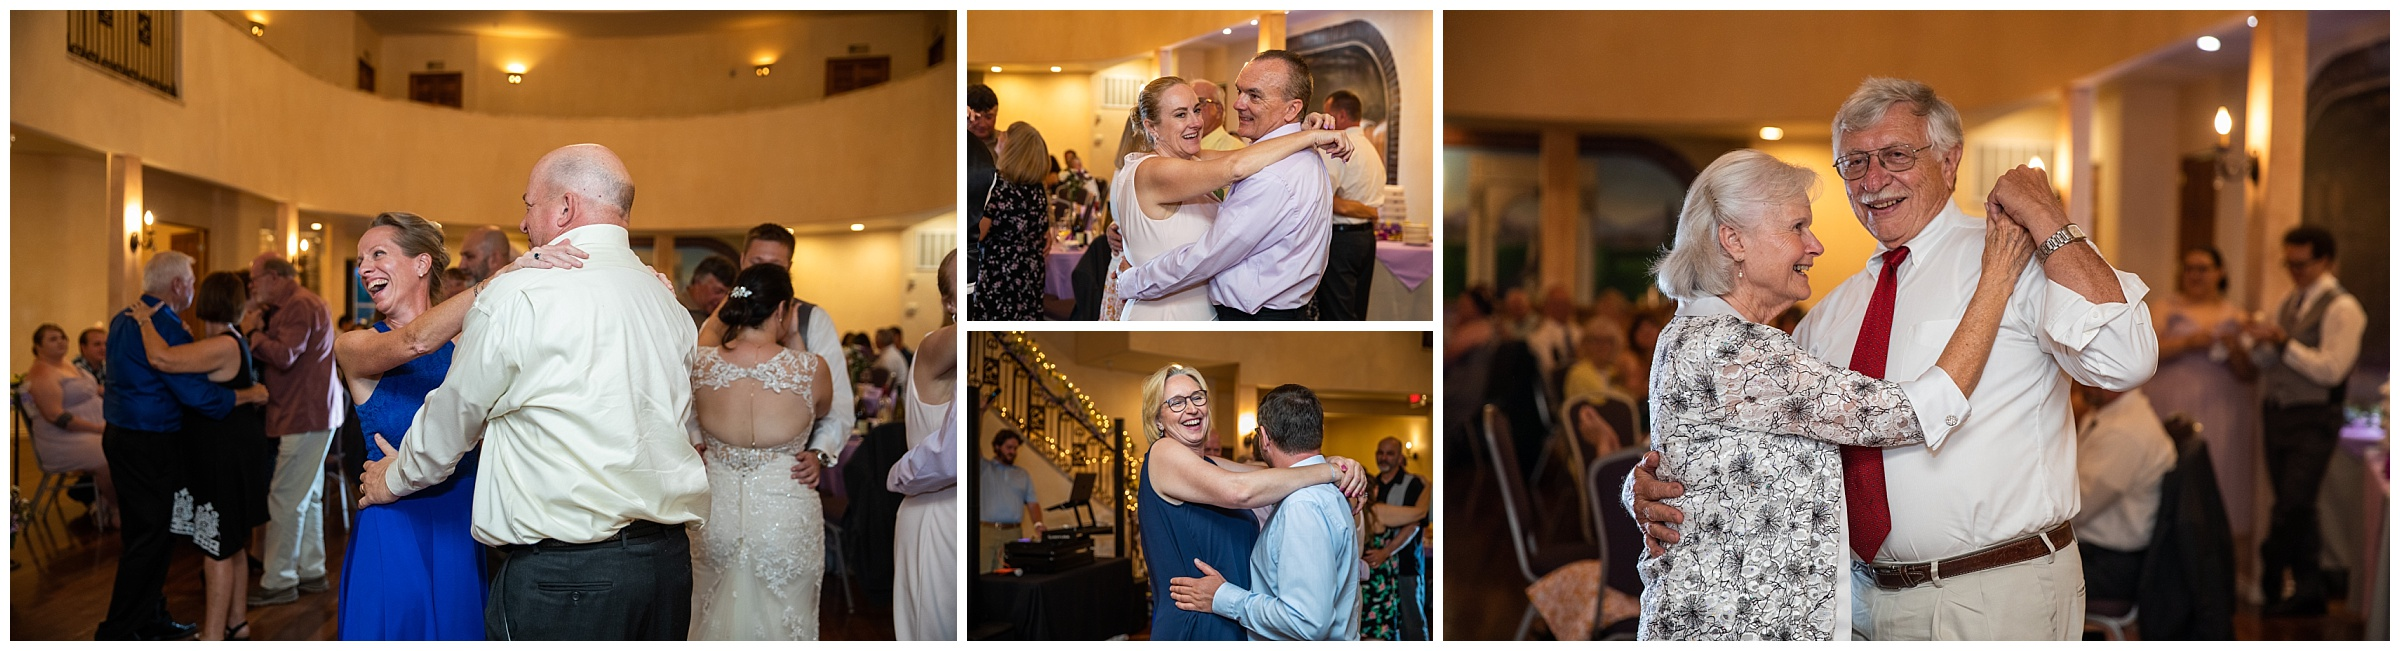 I am a sucker for the anniversary dance! I love this - it gets all the married couples on the floor, if for only a bit. Little by little, couples leave the dance floor according to how long they've been married. This dance was one for the books! There were still 4 couples remaining when they got to 50 years… wow! The longest married couple was the groom's grandparents, having been married 61 years! They gave the new couple a little advice…